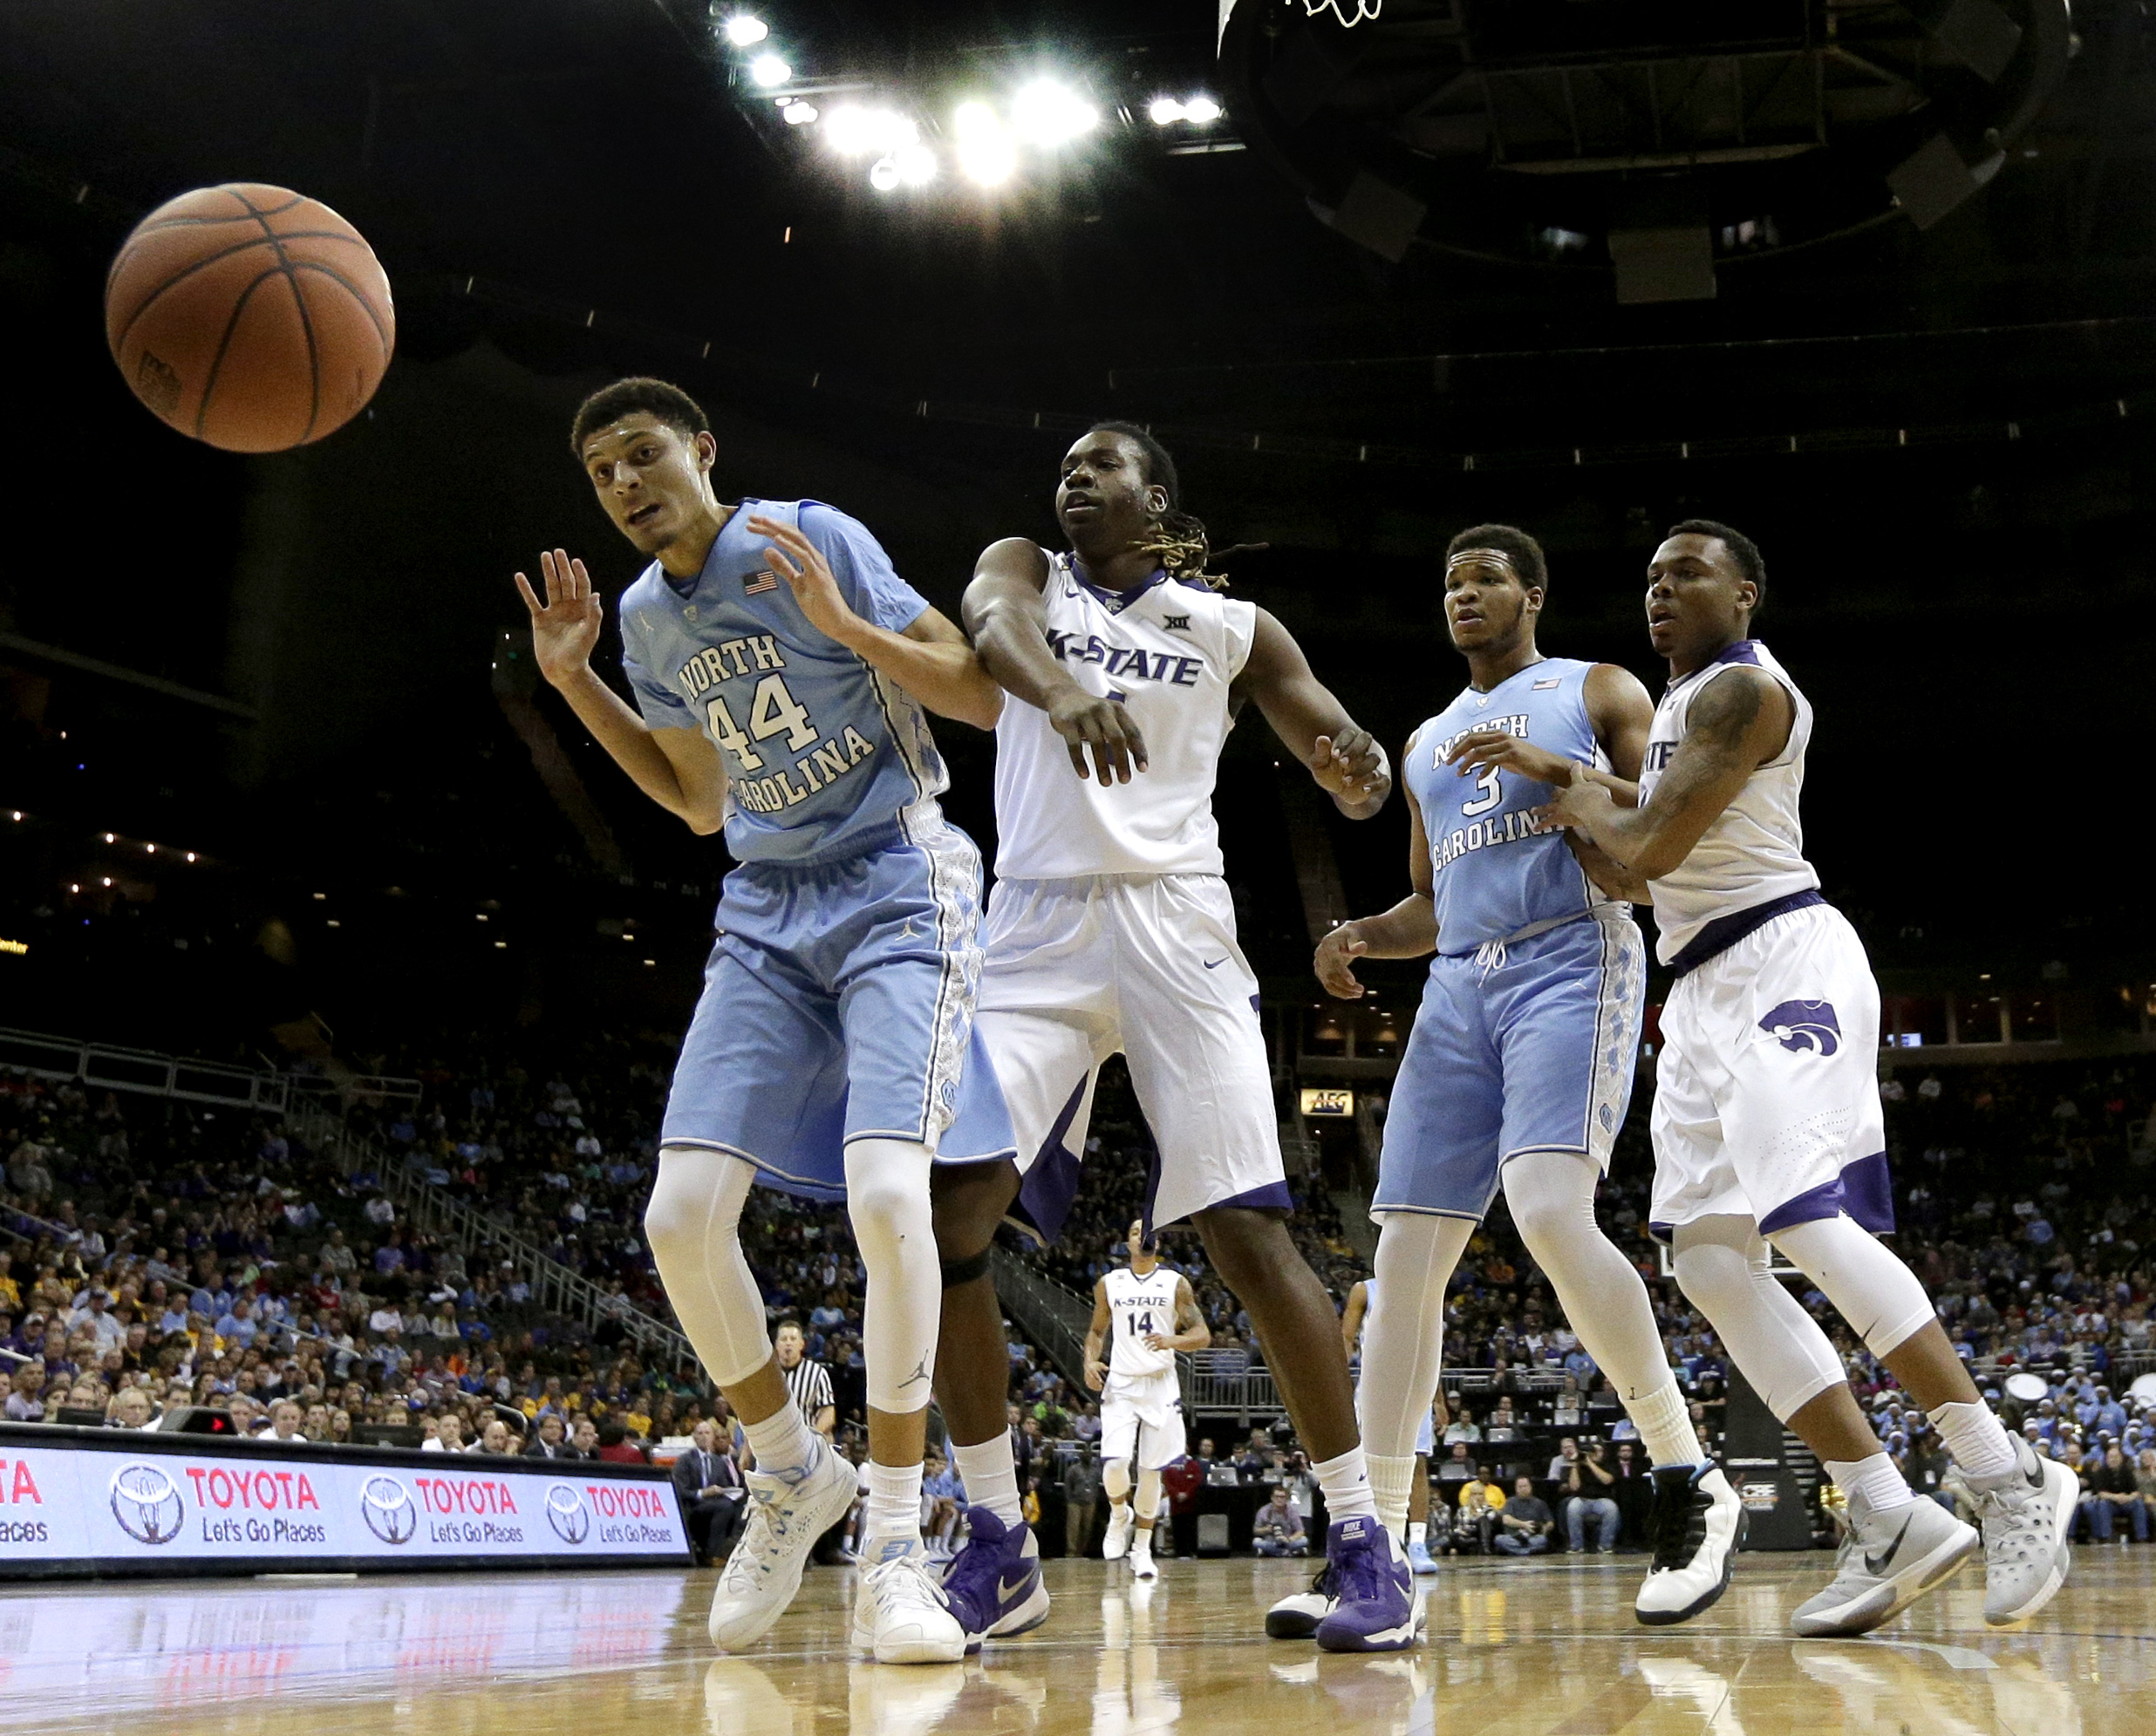 North Carolina's Justin Jackson (44) and Kansas State's Carlbe Ervin II watch as a ball flies out of bounds during the first half of an NCAA college basketball game Tuesday, Nov. 24, 2015, in Kansas City, Mo. (AP Photo/Charlie Riedel)